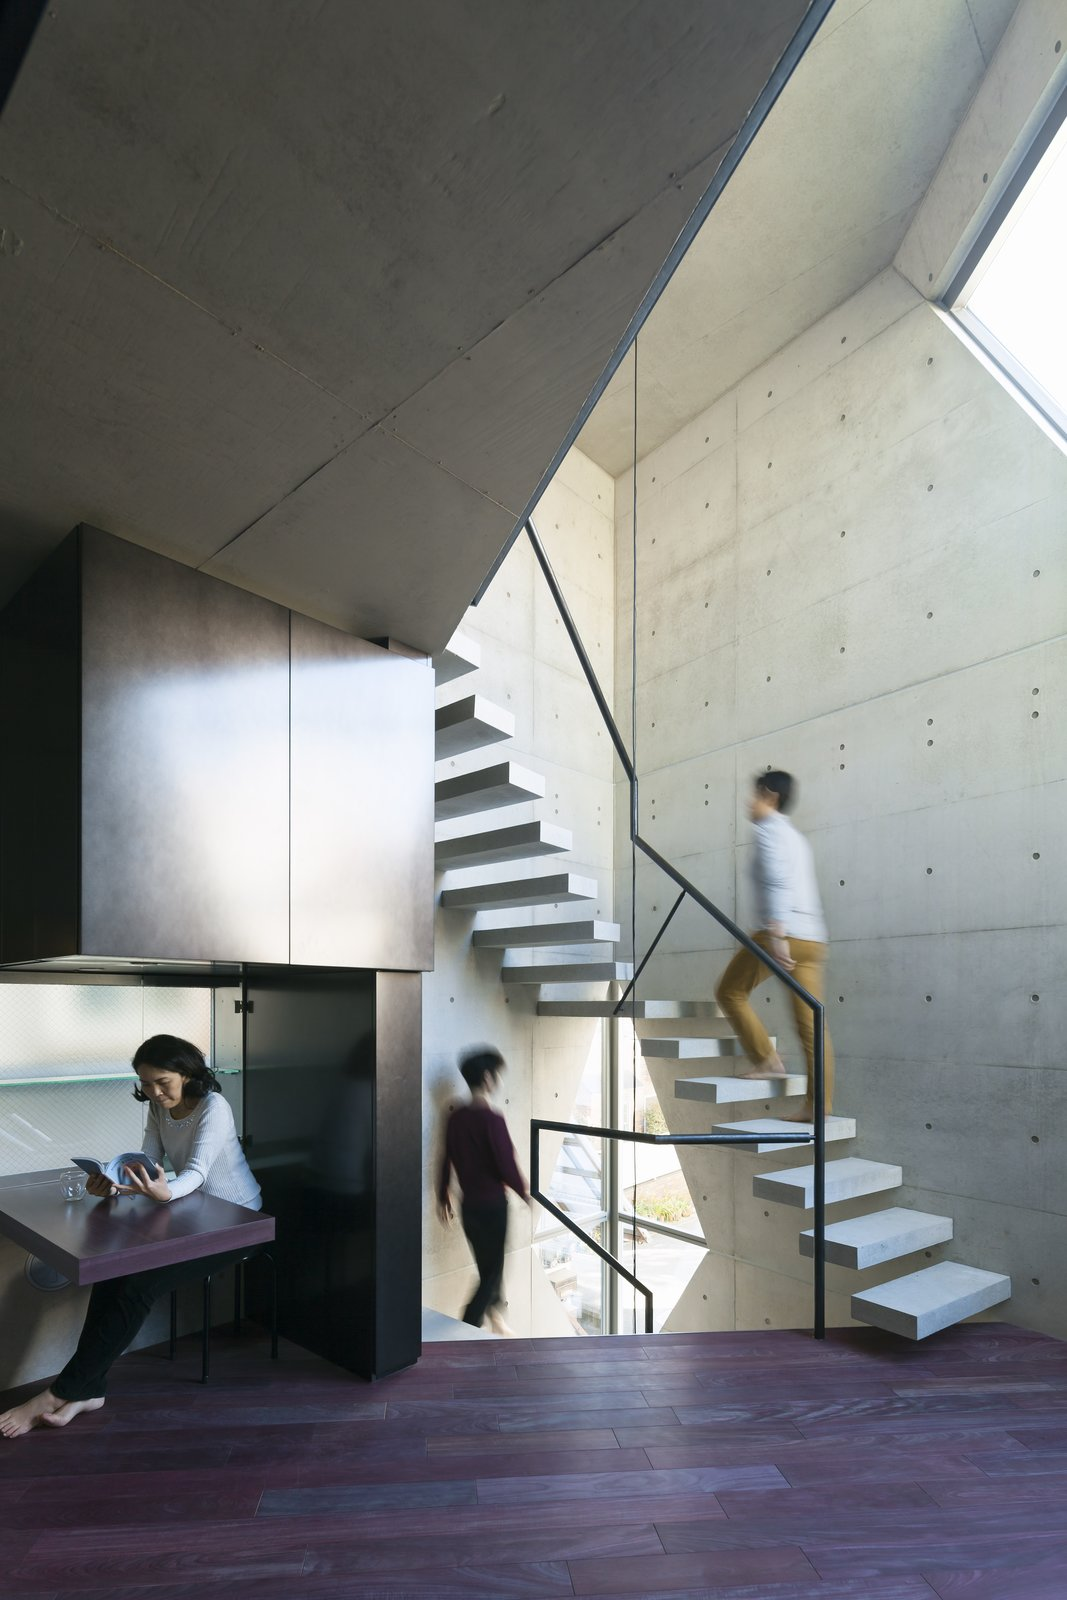 Staircase, Concrete Tread, and Metal Railing  Photo 9 of 16 in A Concrete Micro-House in Japan Works All the Angles